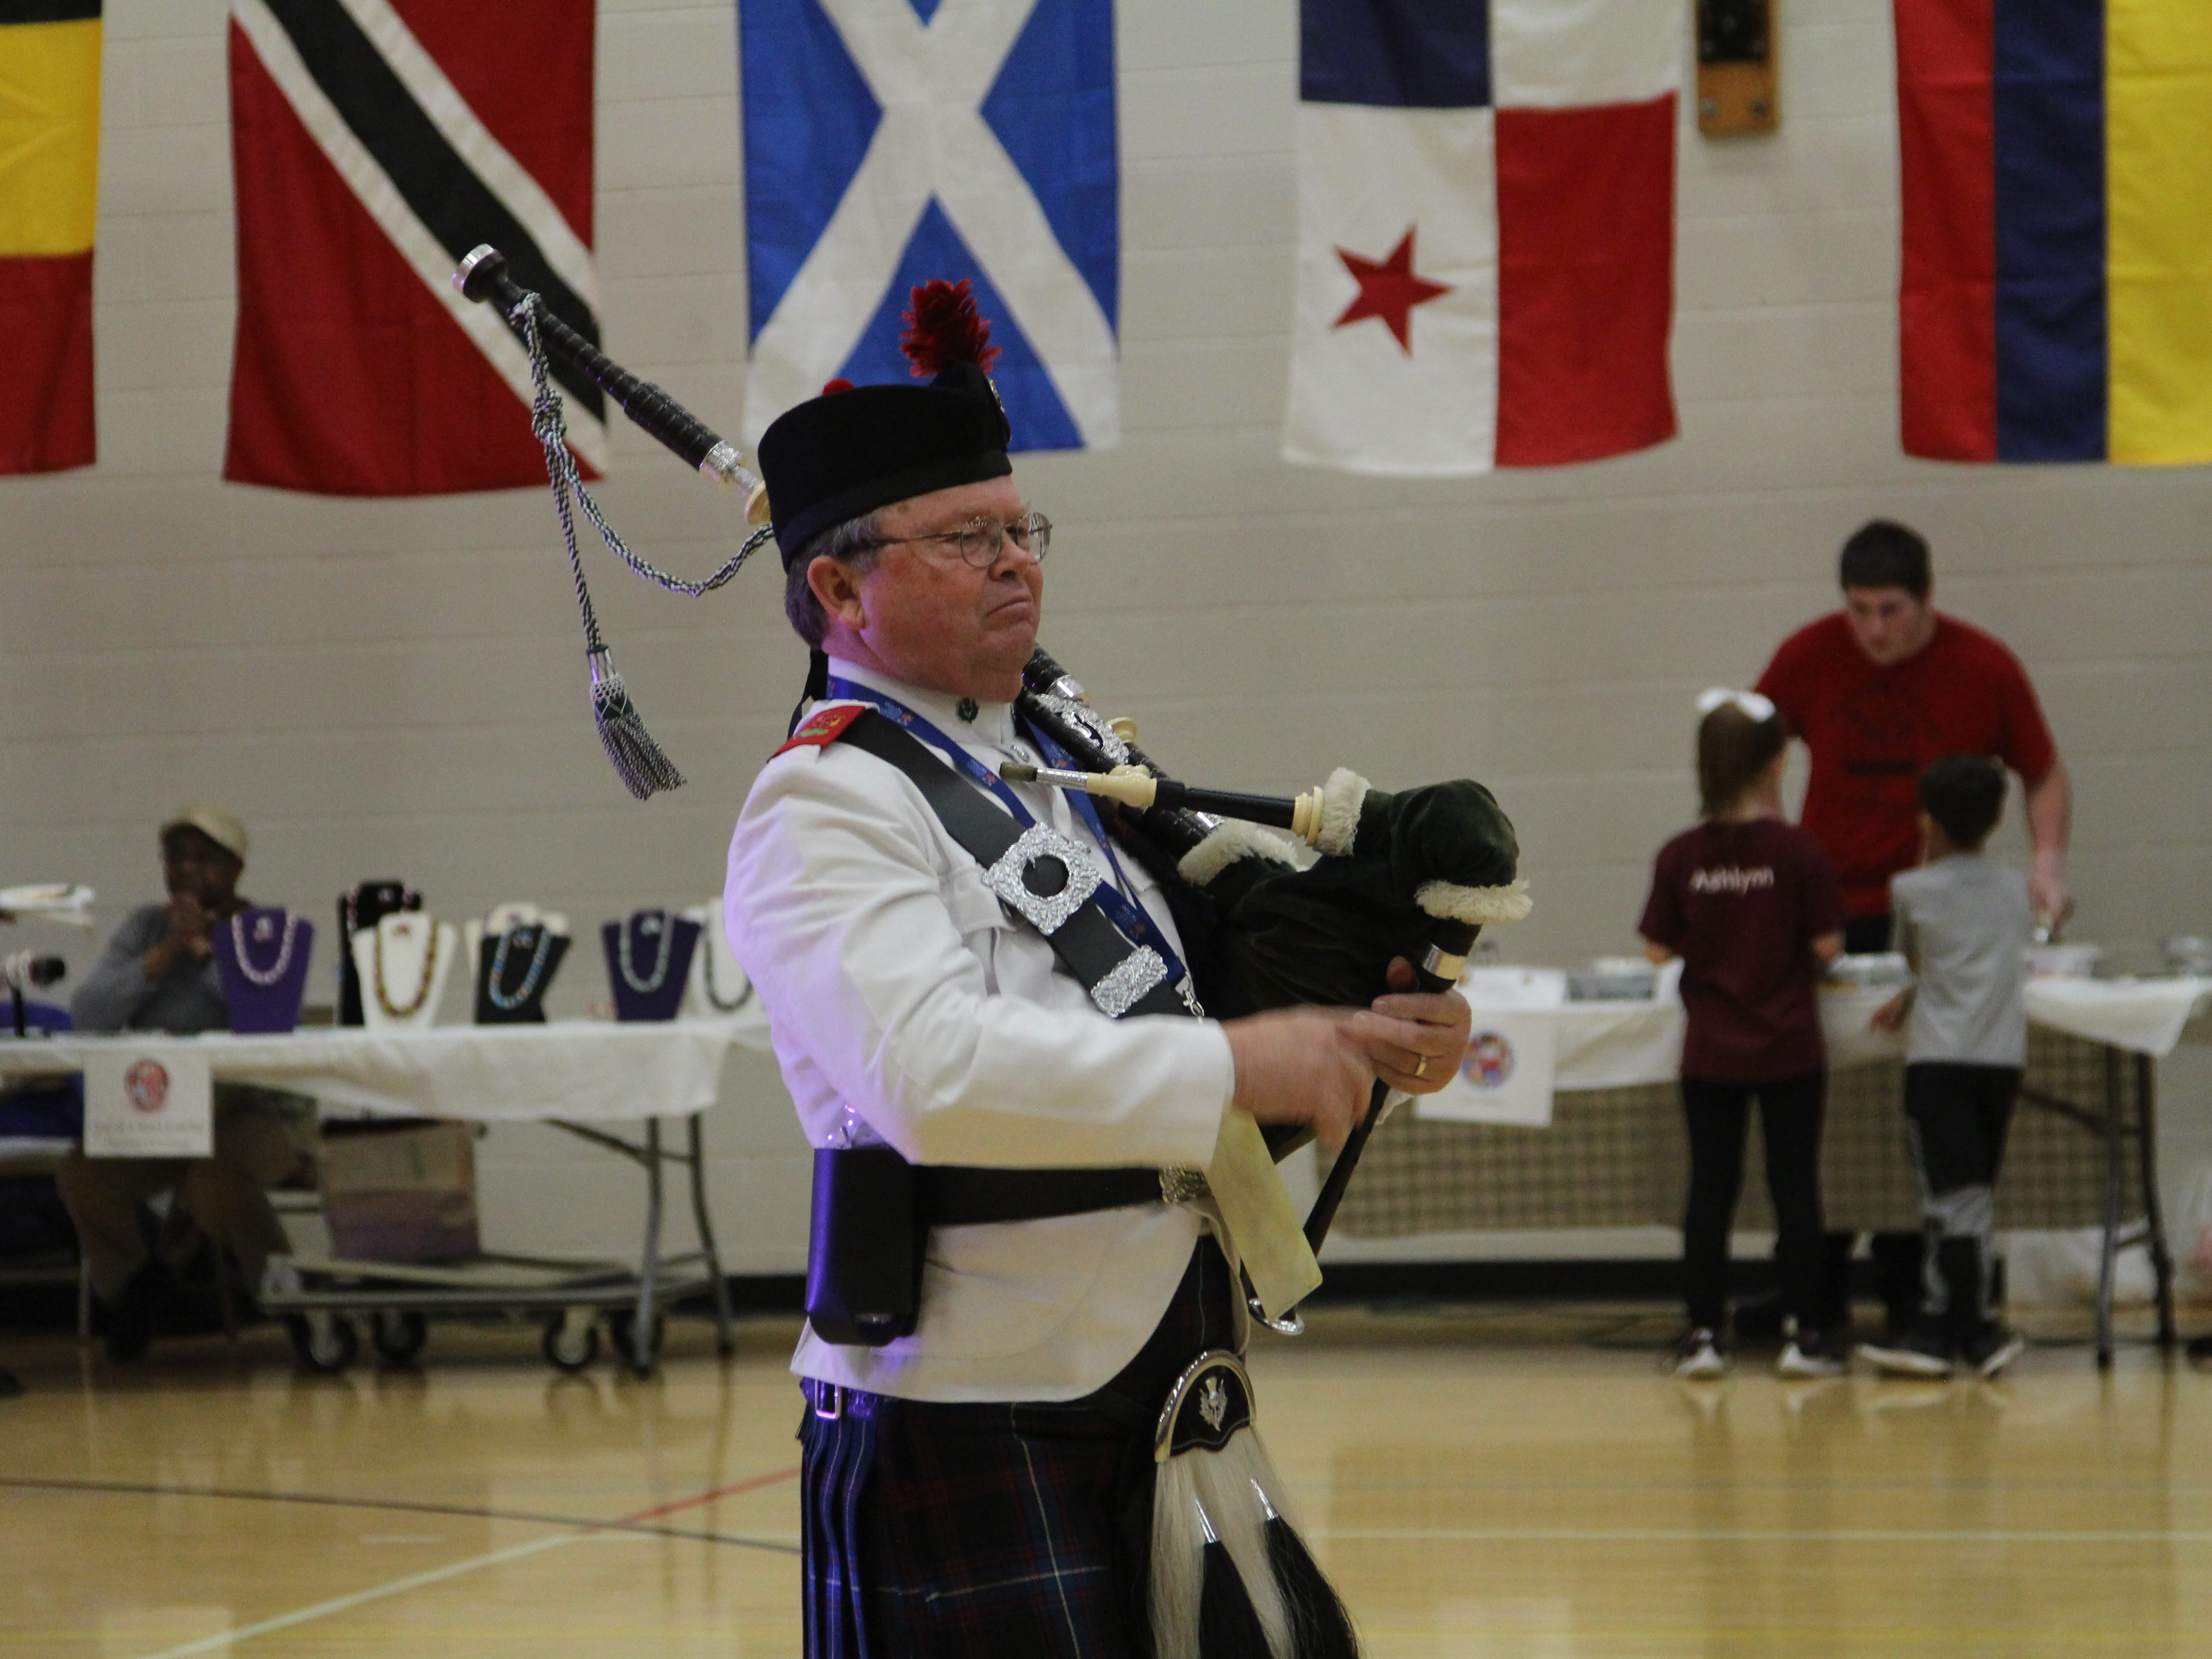 The entertainment at International Festival includes a bagpipe player Thursday at OSU-M's Alber Student Center.